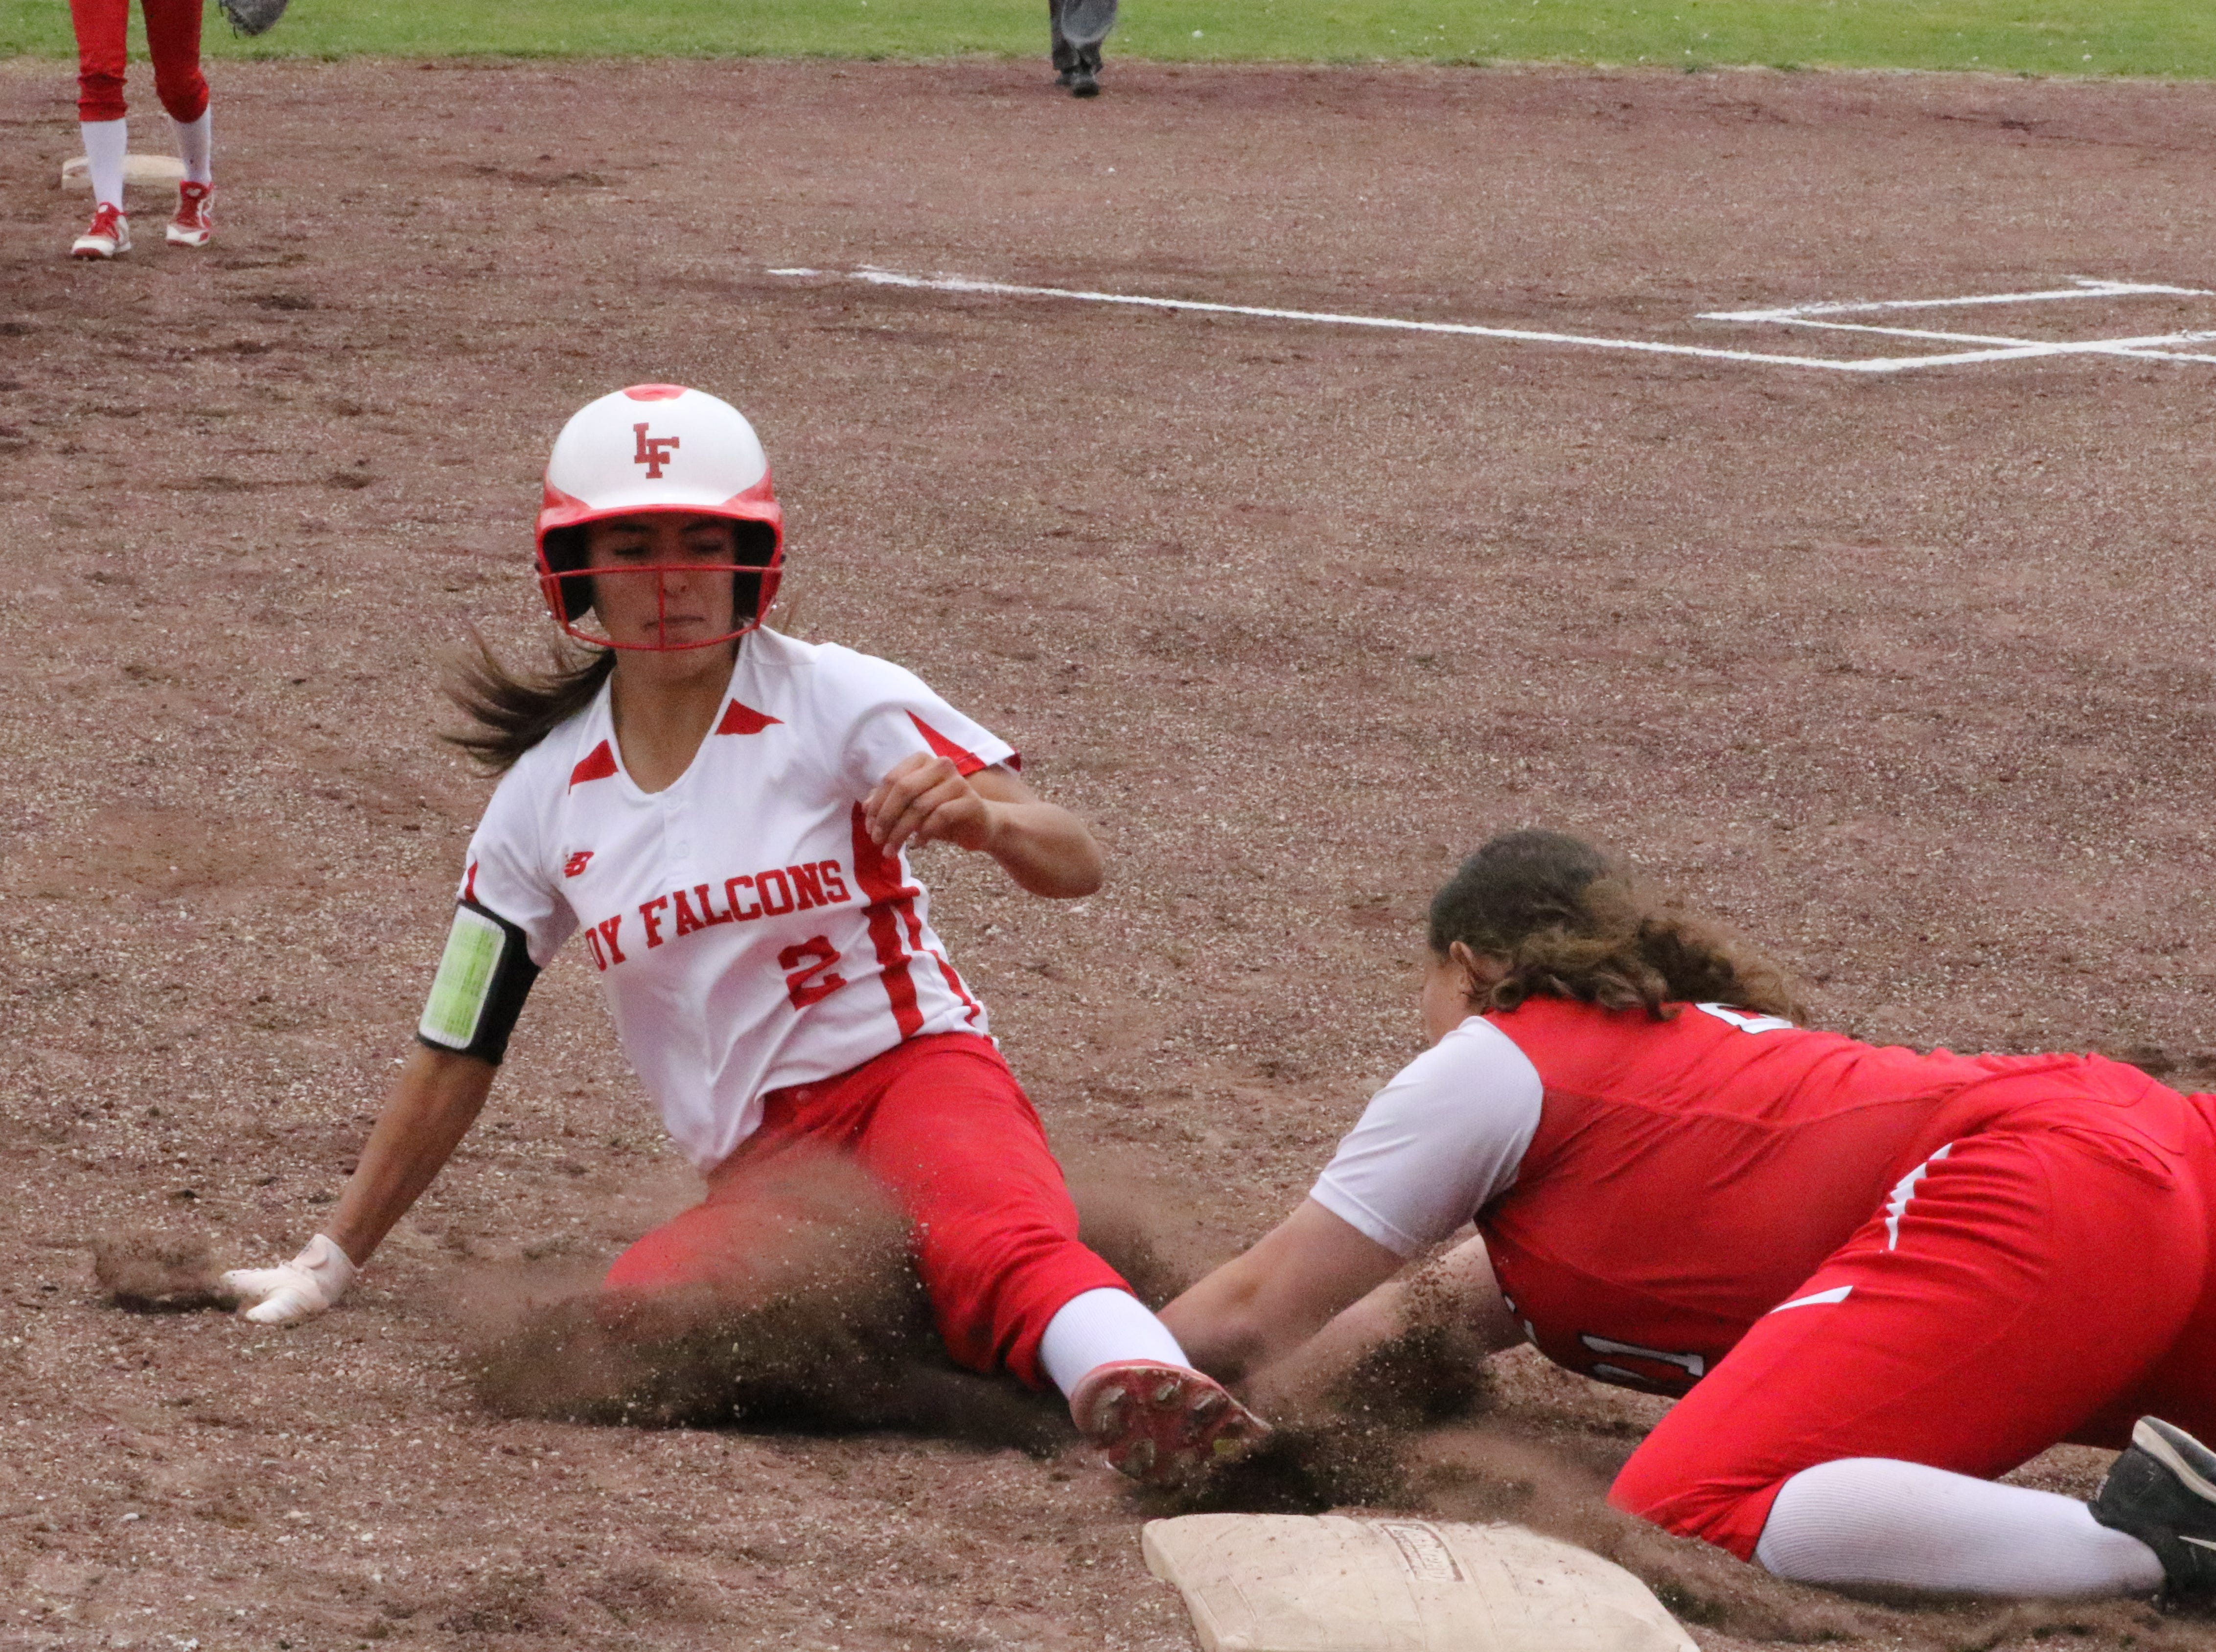 Chasity Onsurez is tagged out while sliding into third base during Game 1 of Saturday's doubleheader. Eunice won Game 1, 13-12 and Loving won Game 2, 16-6.